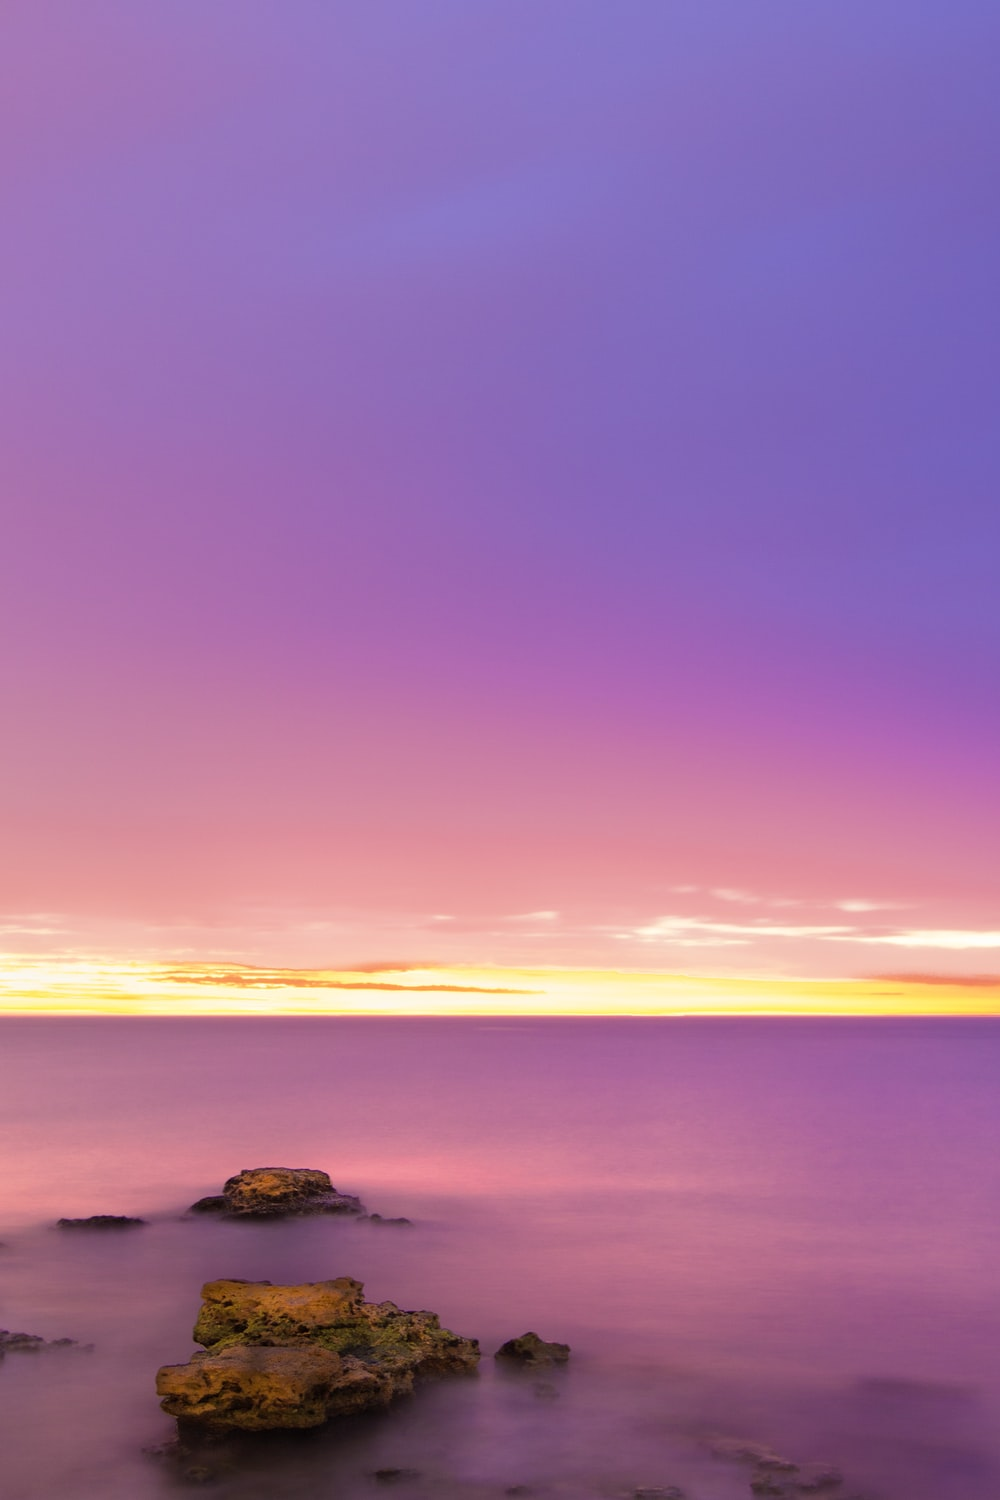 rock formation on body of water during sunrise